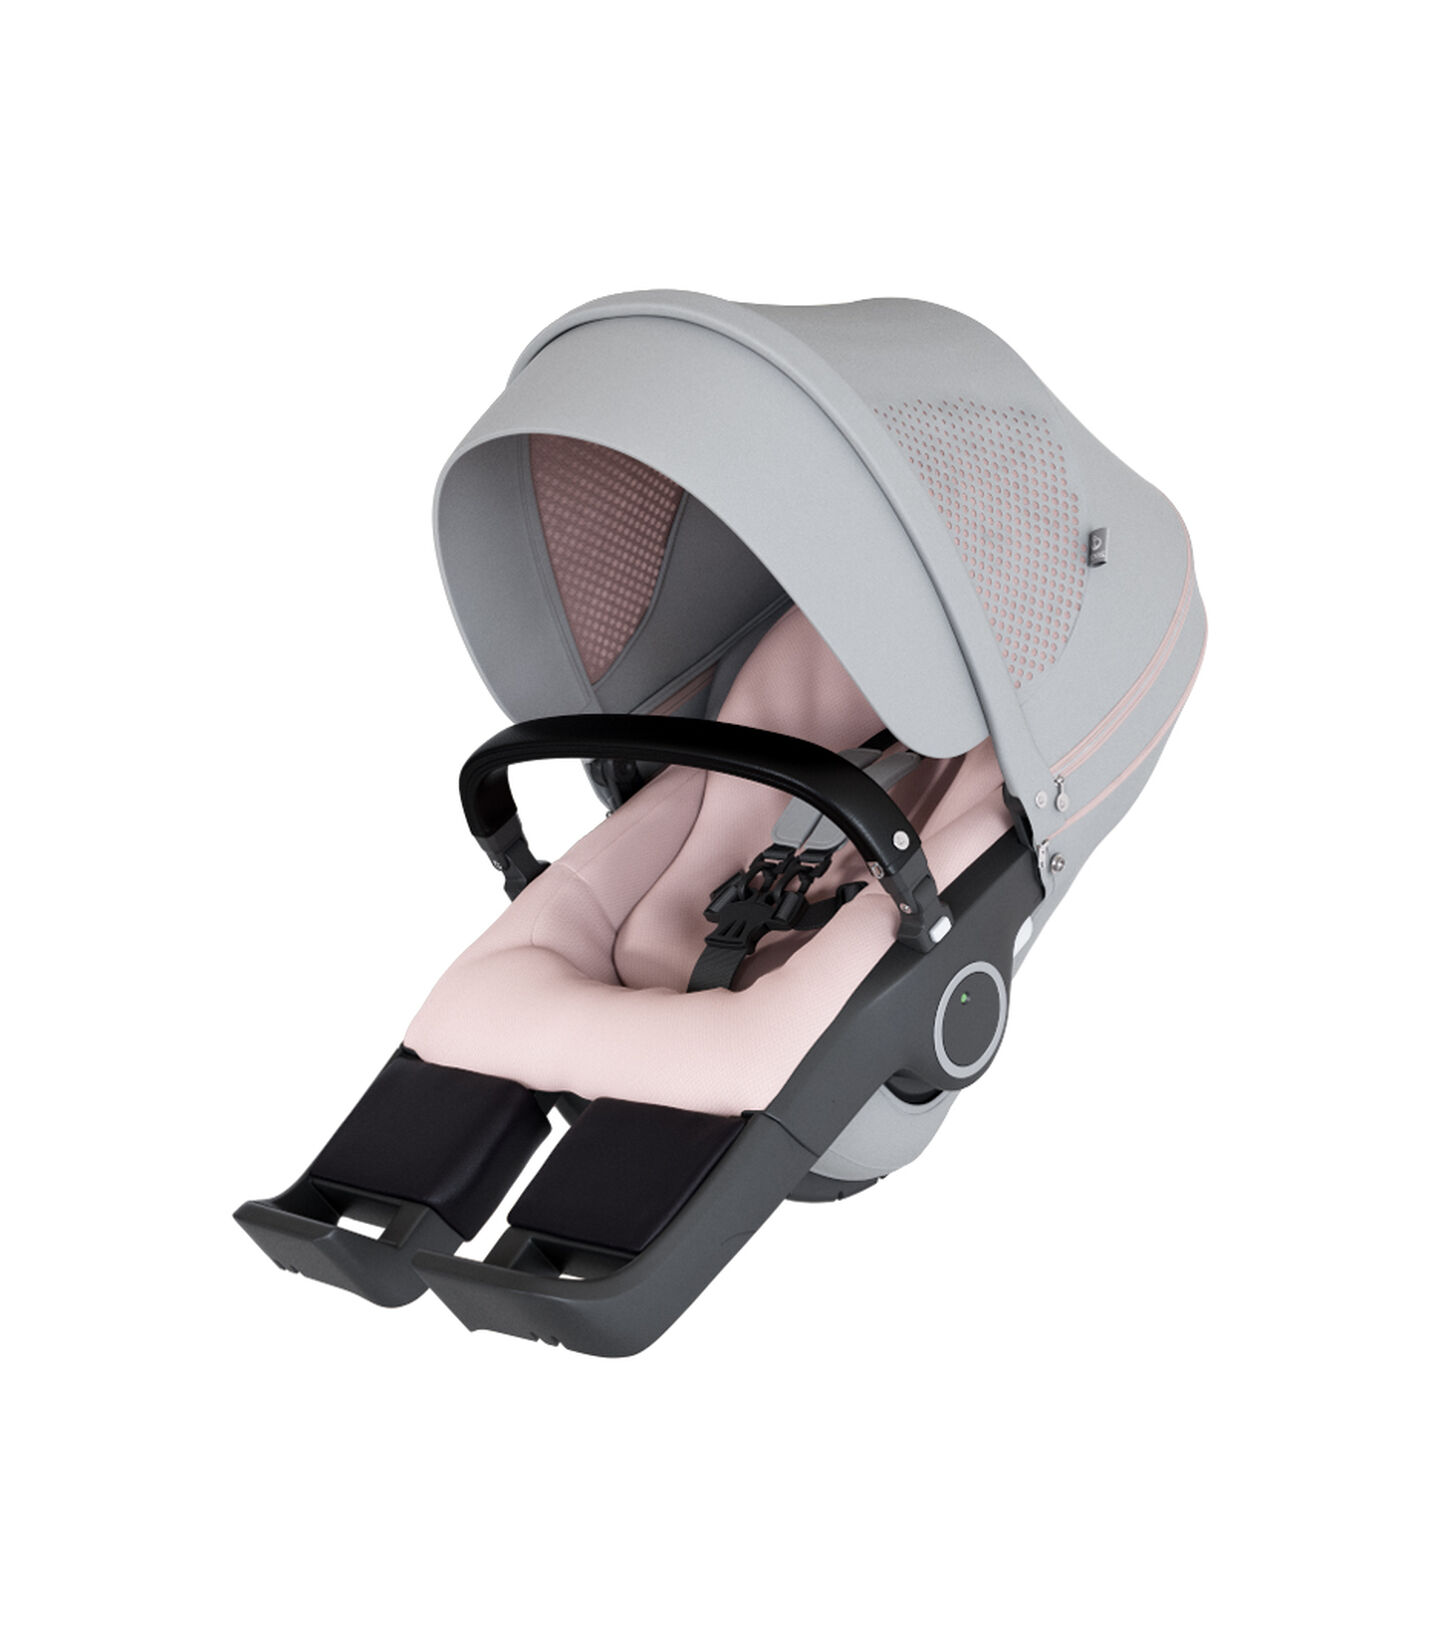 Stokke® Stroller Seat Athleisure Pink, Athleisure Pink, mainview view 2